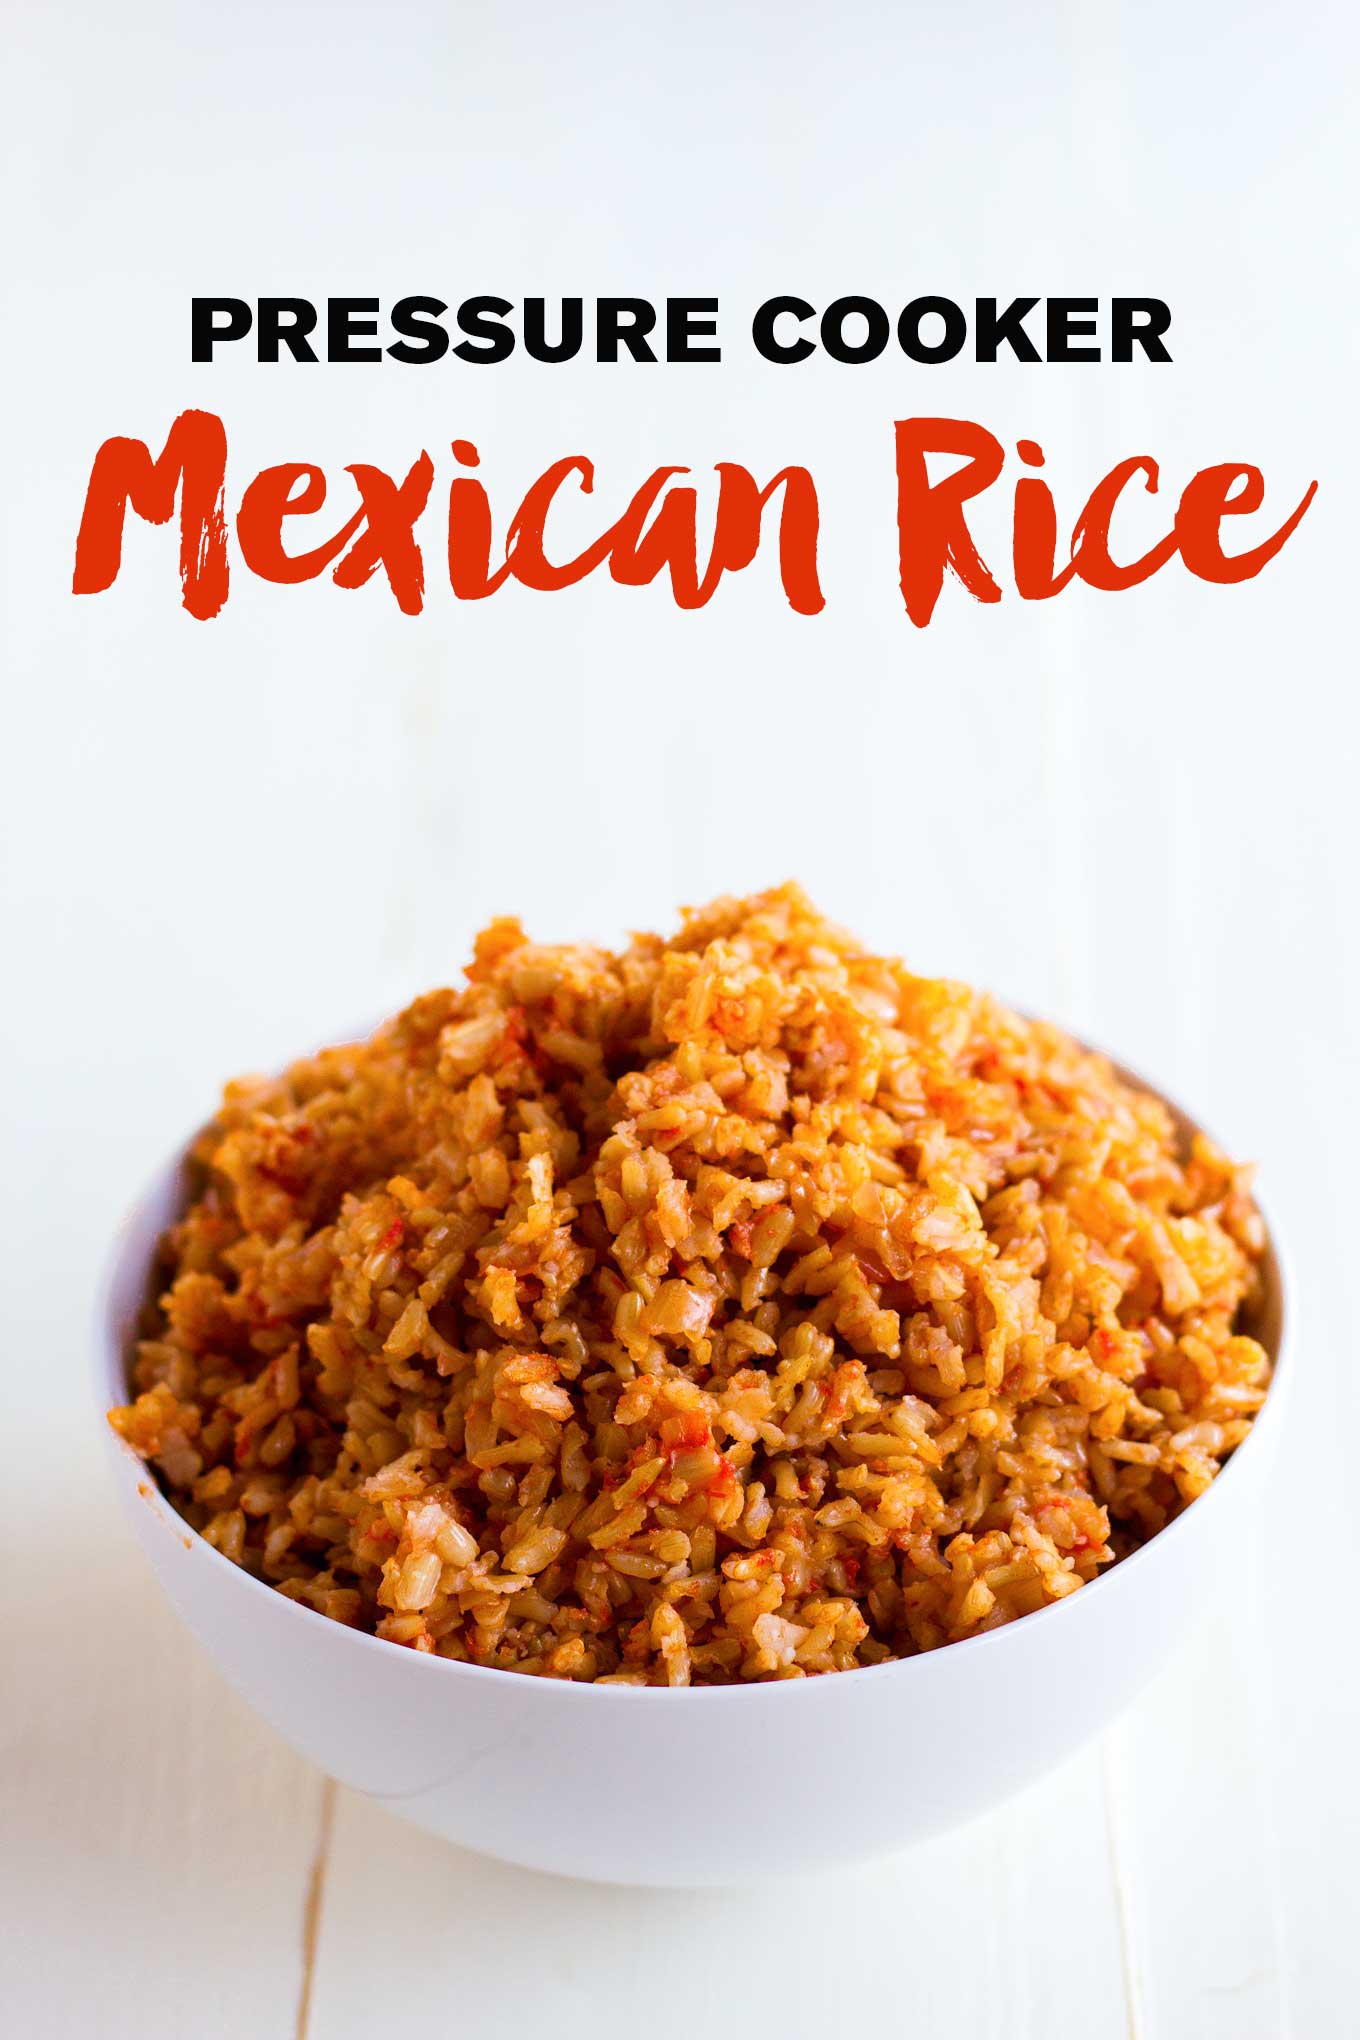 Make foolproof Mexican rice in a pressure cooker! Methods for brown and white rice included. Vegan, gluten-free. | https://passtheplants.com